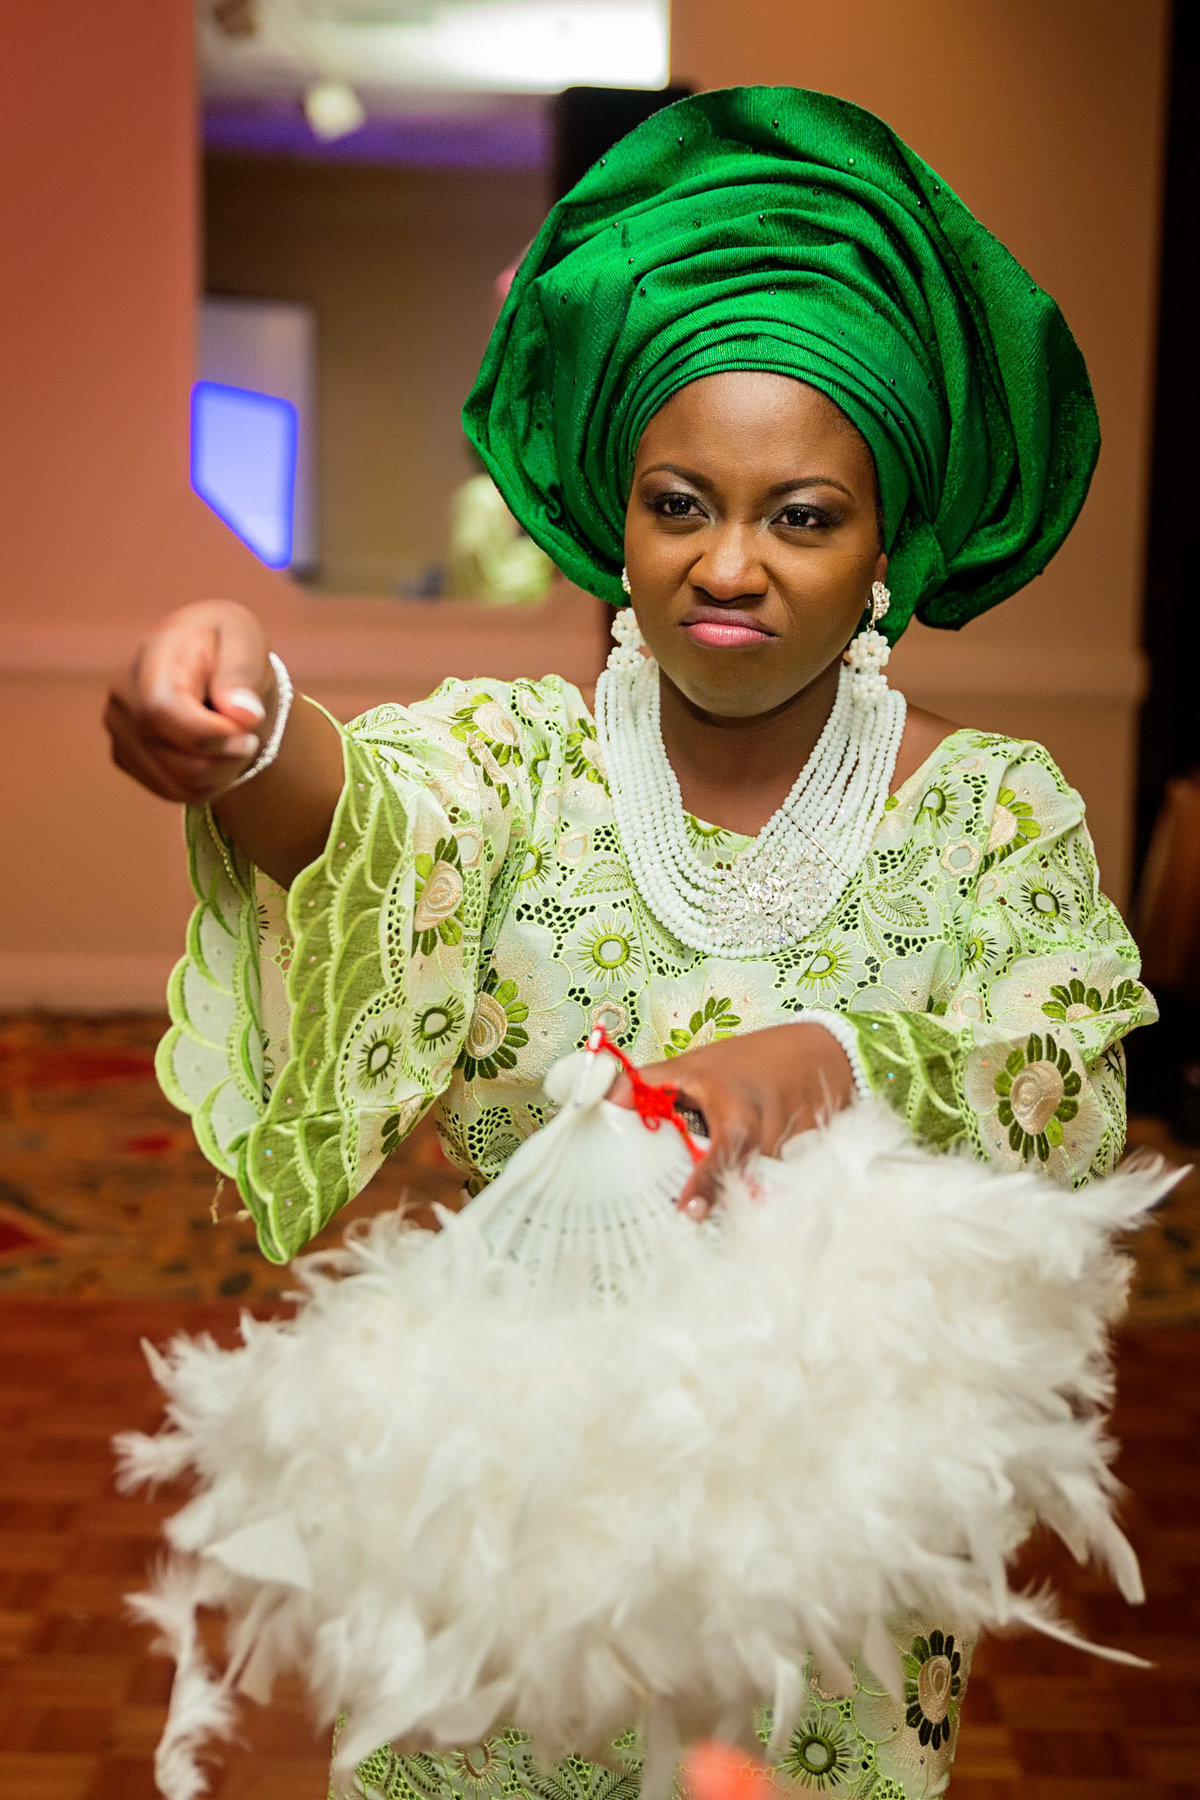 For-FacebookAndWebsites-Yewande-Lolu-Wedding-Winston-Salem-Clemmons-NC-Yoruba-Nigerian-Kumolu-Studios-1358